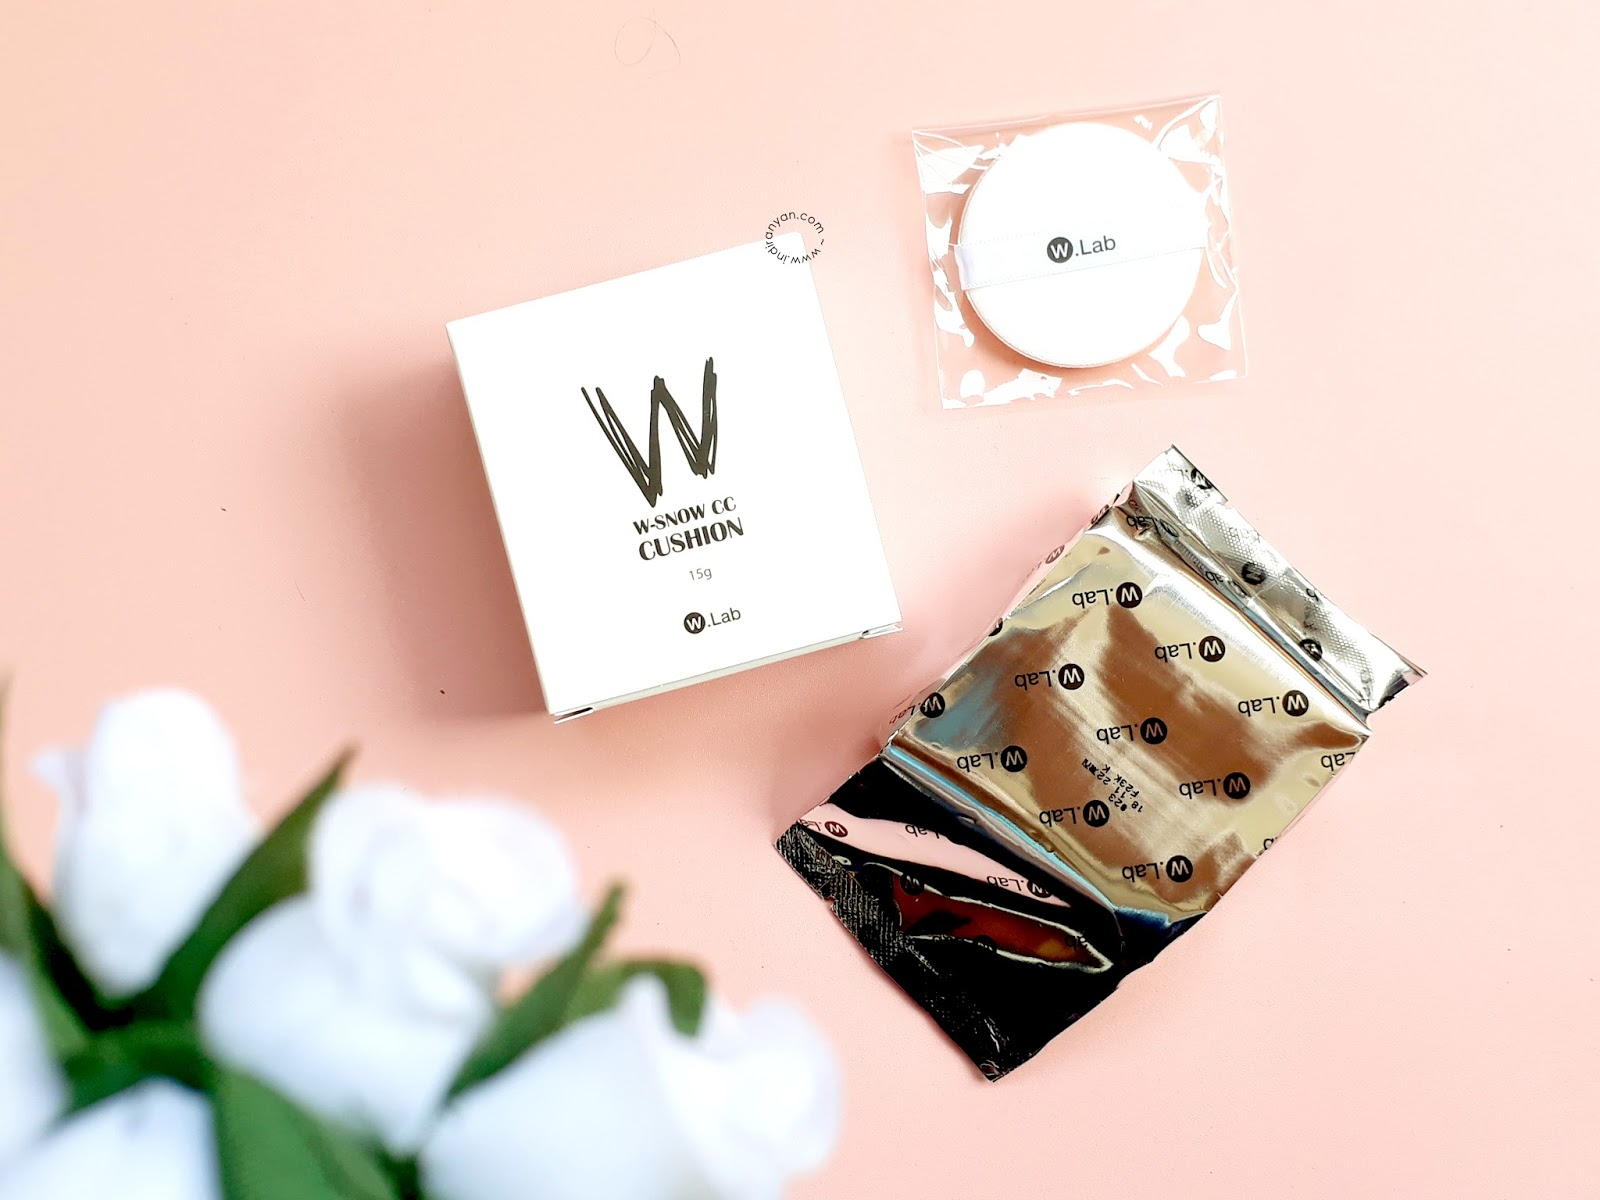 wlab-w-snow-cc-cushion, reviiew-wlab-w-snow-cc-cushion, wlab-w-snow-cc-cushion-review, review-cushion-wlab, review-wlab-cushion-indonesia, review-wlab-cc-cushion